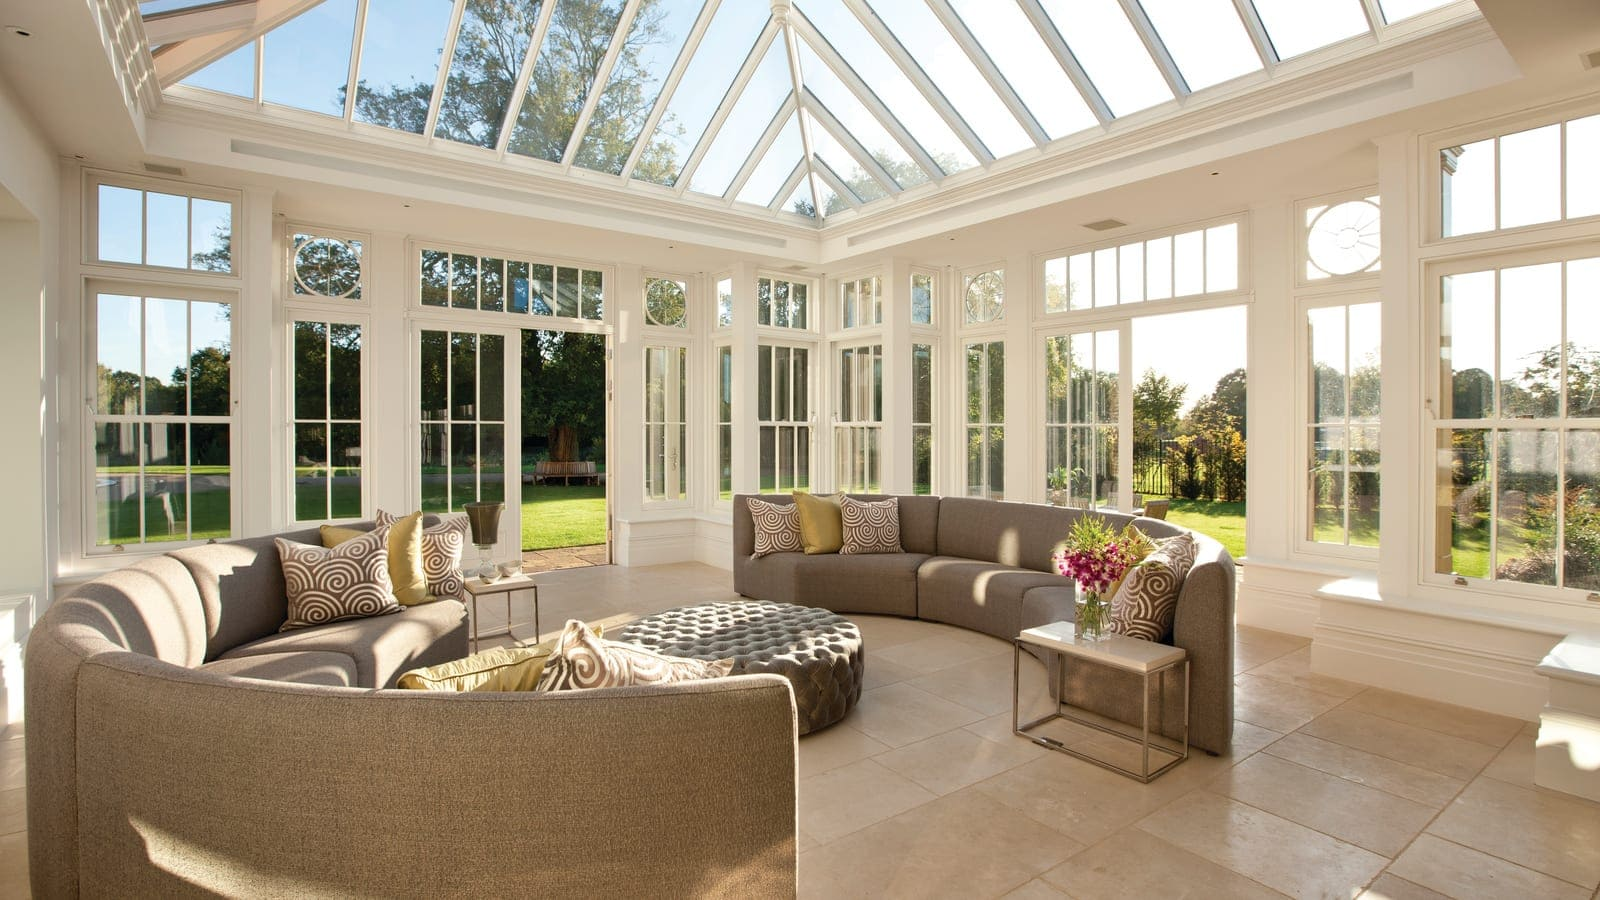 Large open living space inside newly built orangery, finished with stone floor